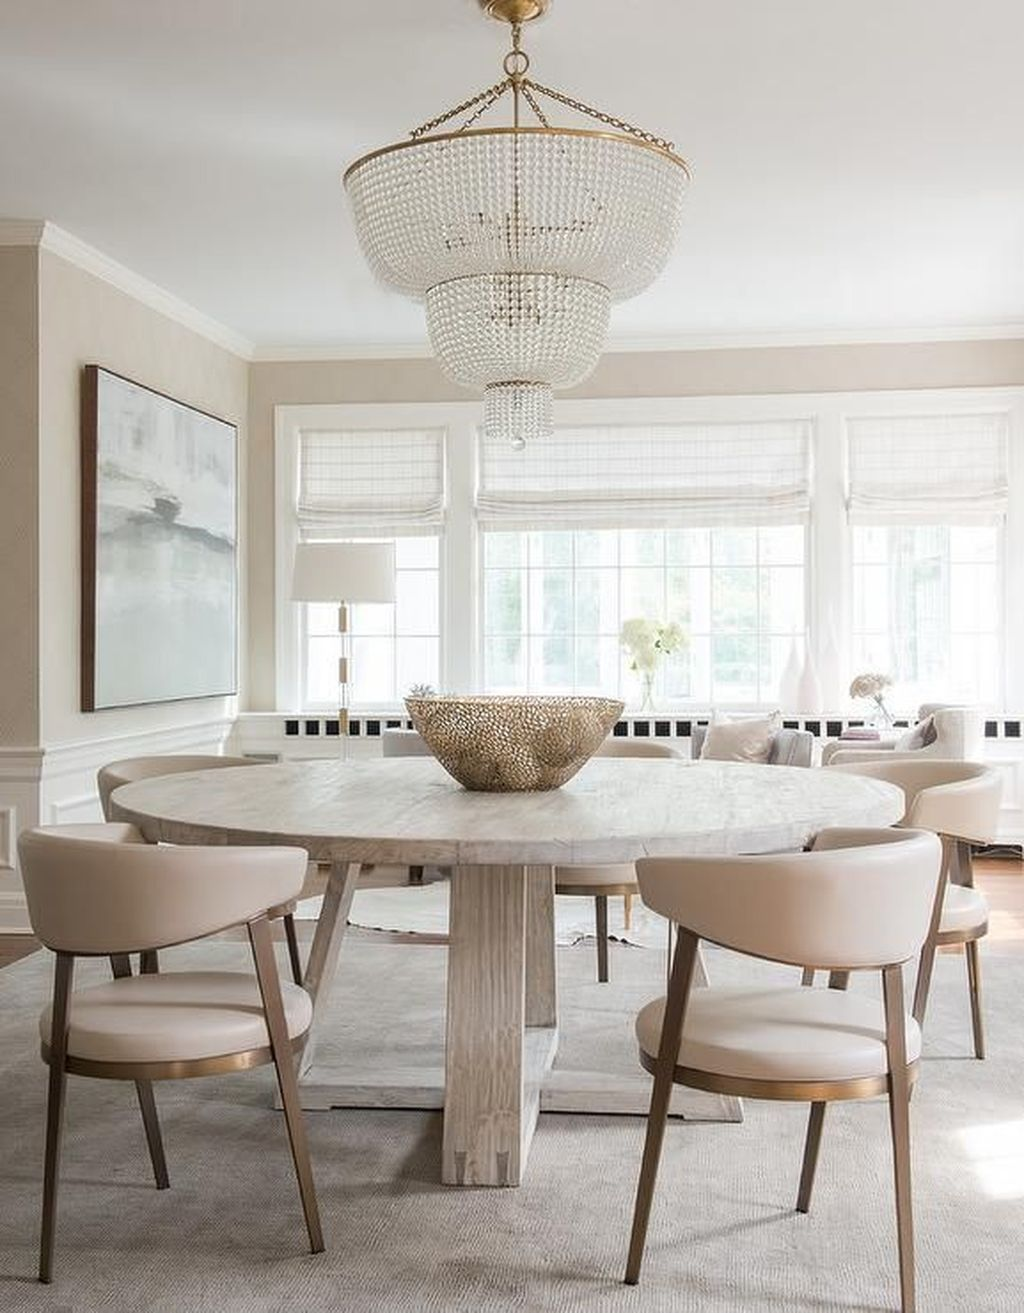 Photo of 43 Beautiful Contemporary Dining Room Decorating Ideas – decoomo.com